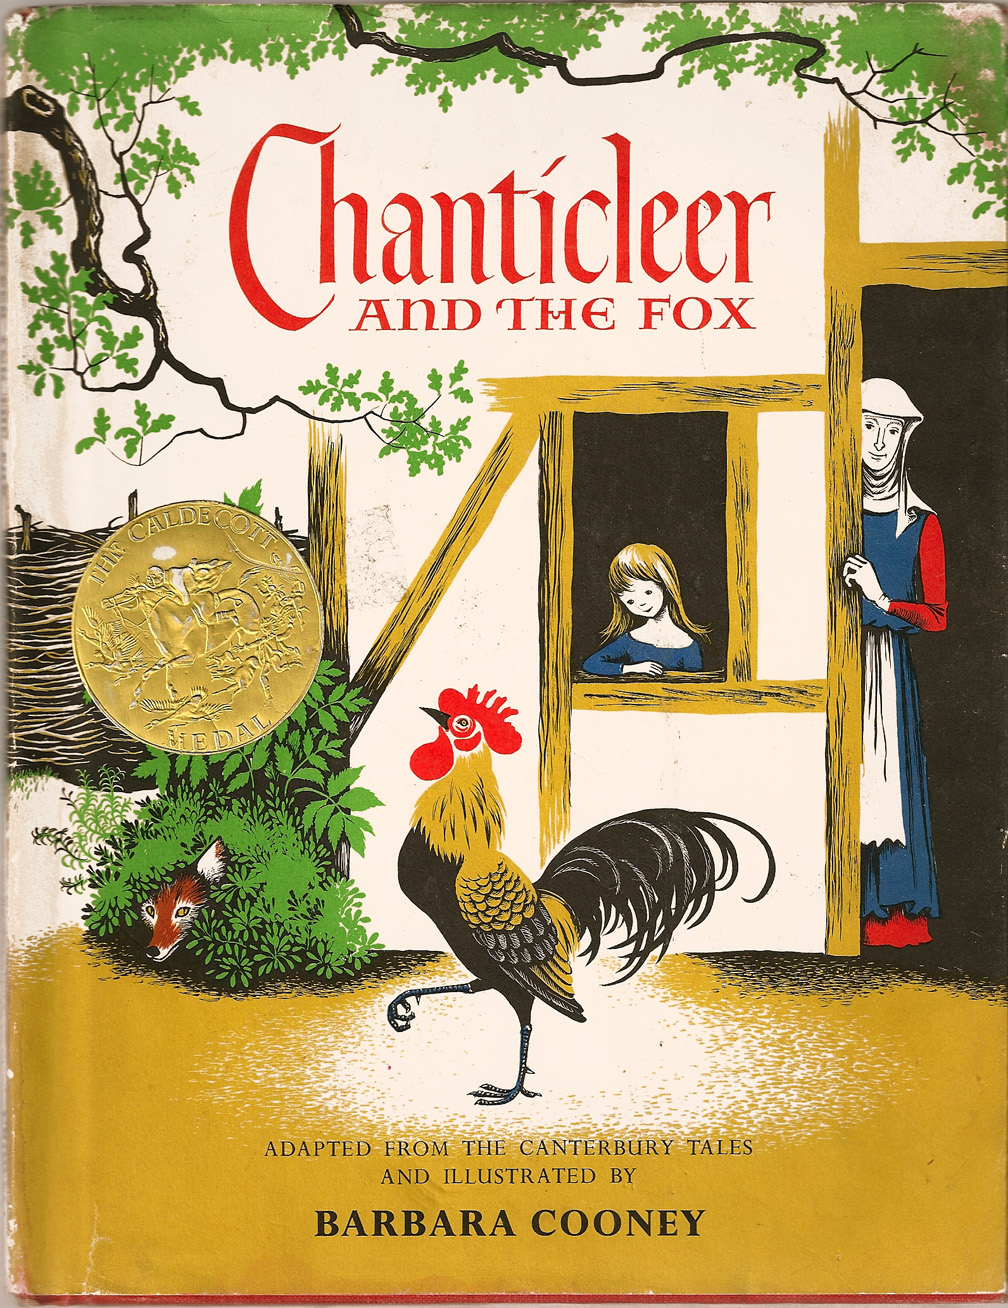 The art of children 39 s picture books january 2011 for The chanticleer